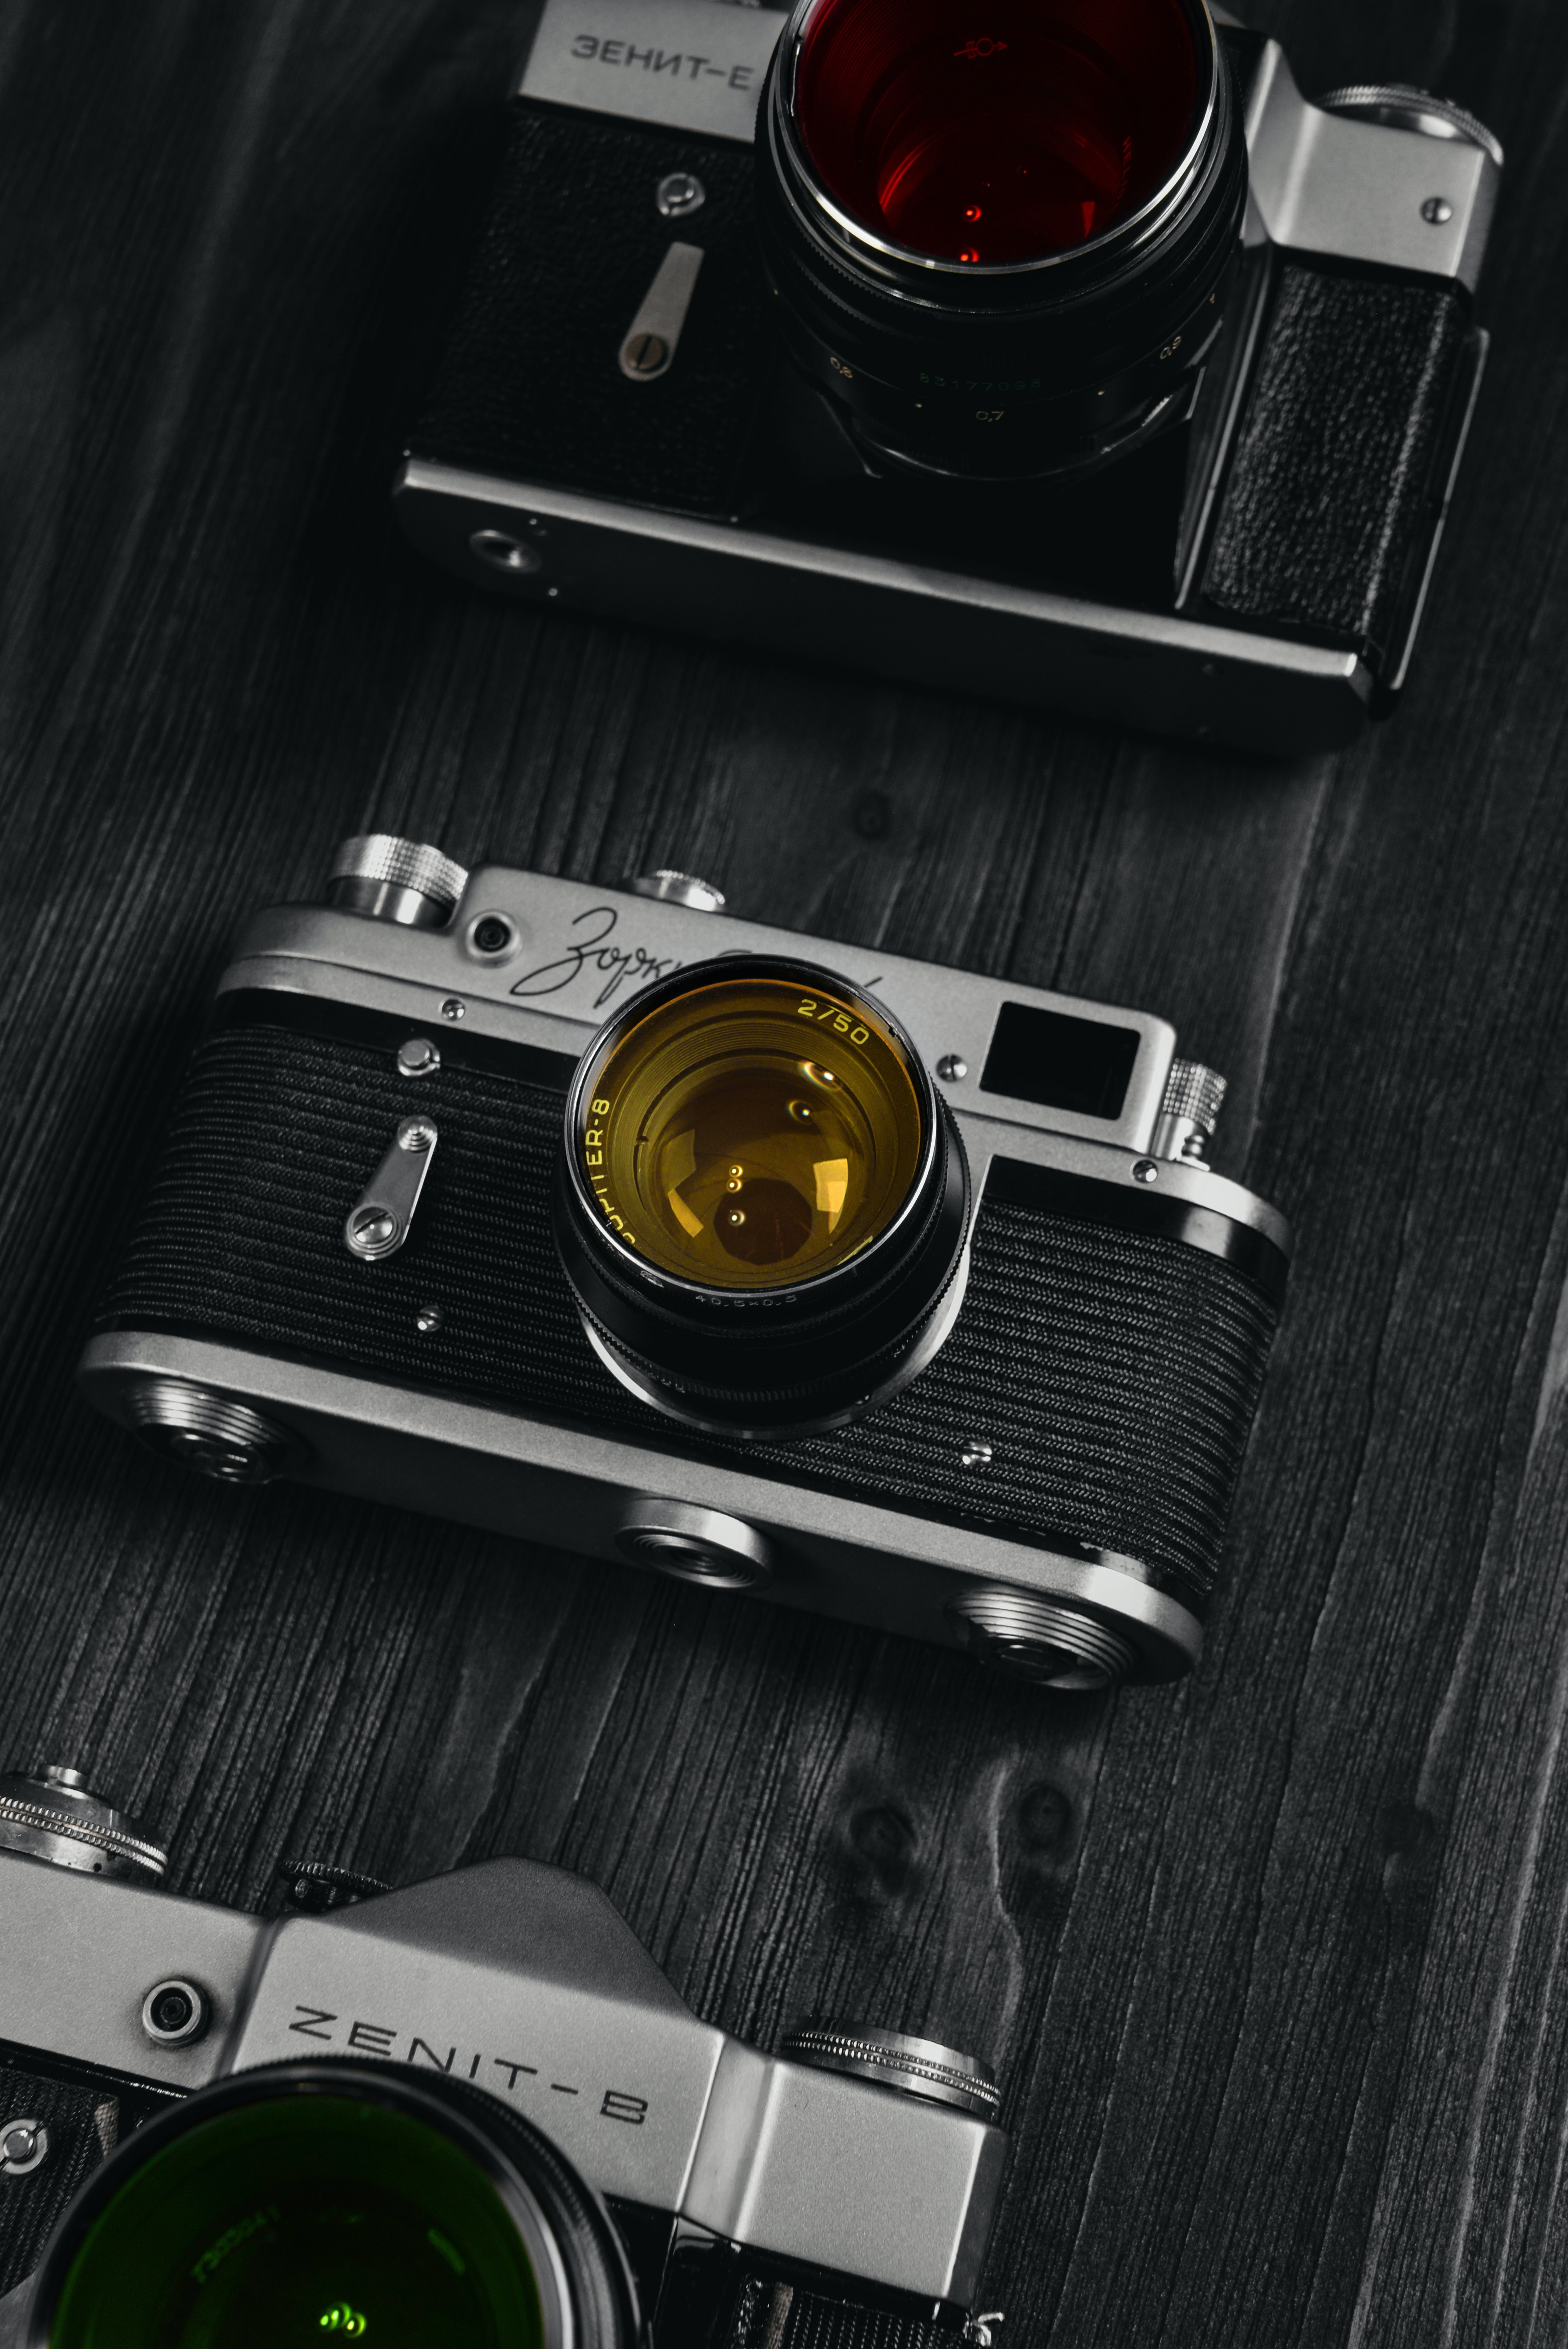 144238 download wallpaper Vintage, Bw, Chb, Retro, Lenses, Technologies, Technology, Camera, Cameras screensavers and pictures for free